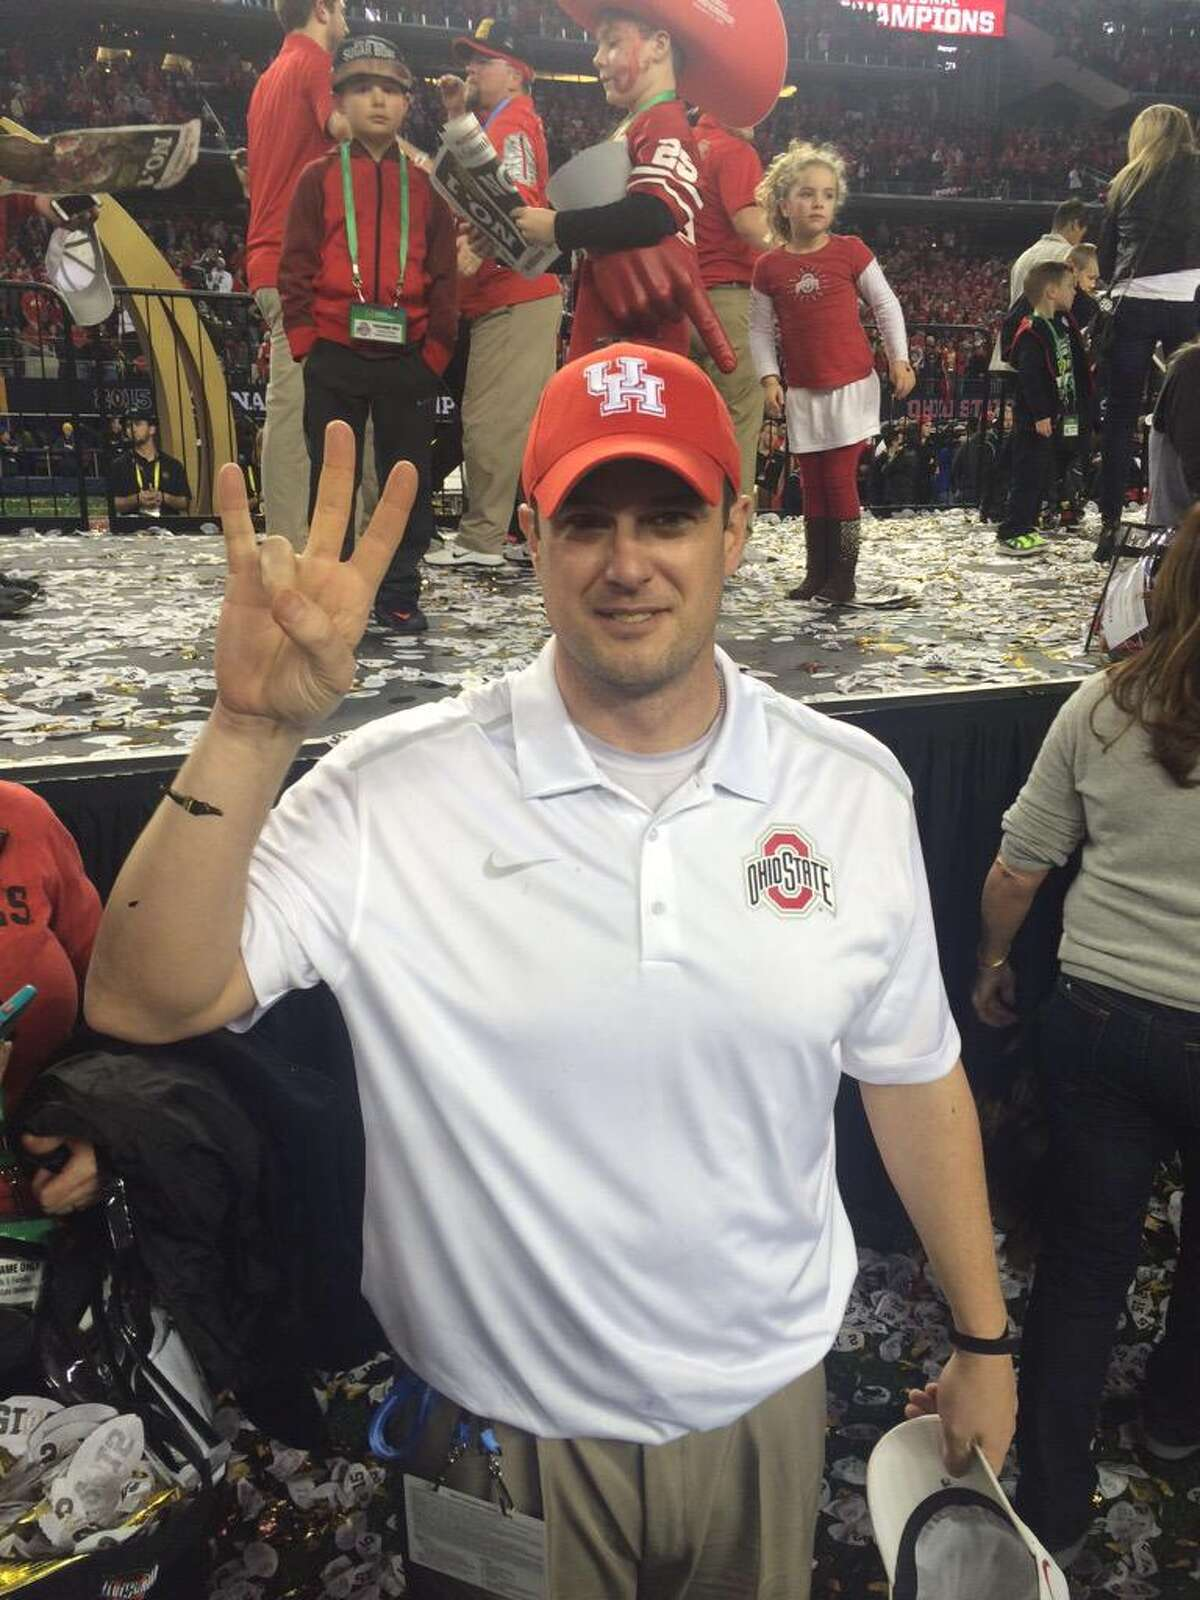 Jan. 12: Herman, the offensive coordinator/quarterbacks coach at Ohio State, wins College Football Playoff championship with 42-20 win over Oregon